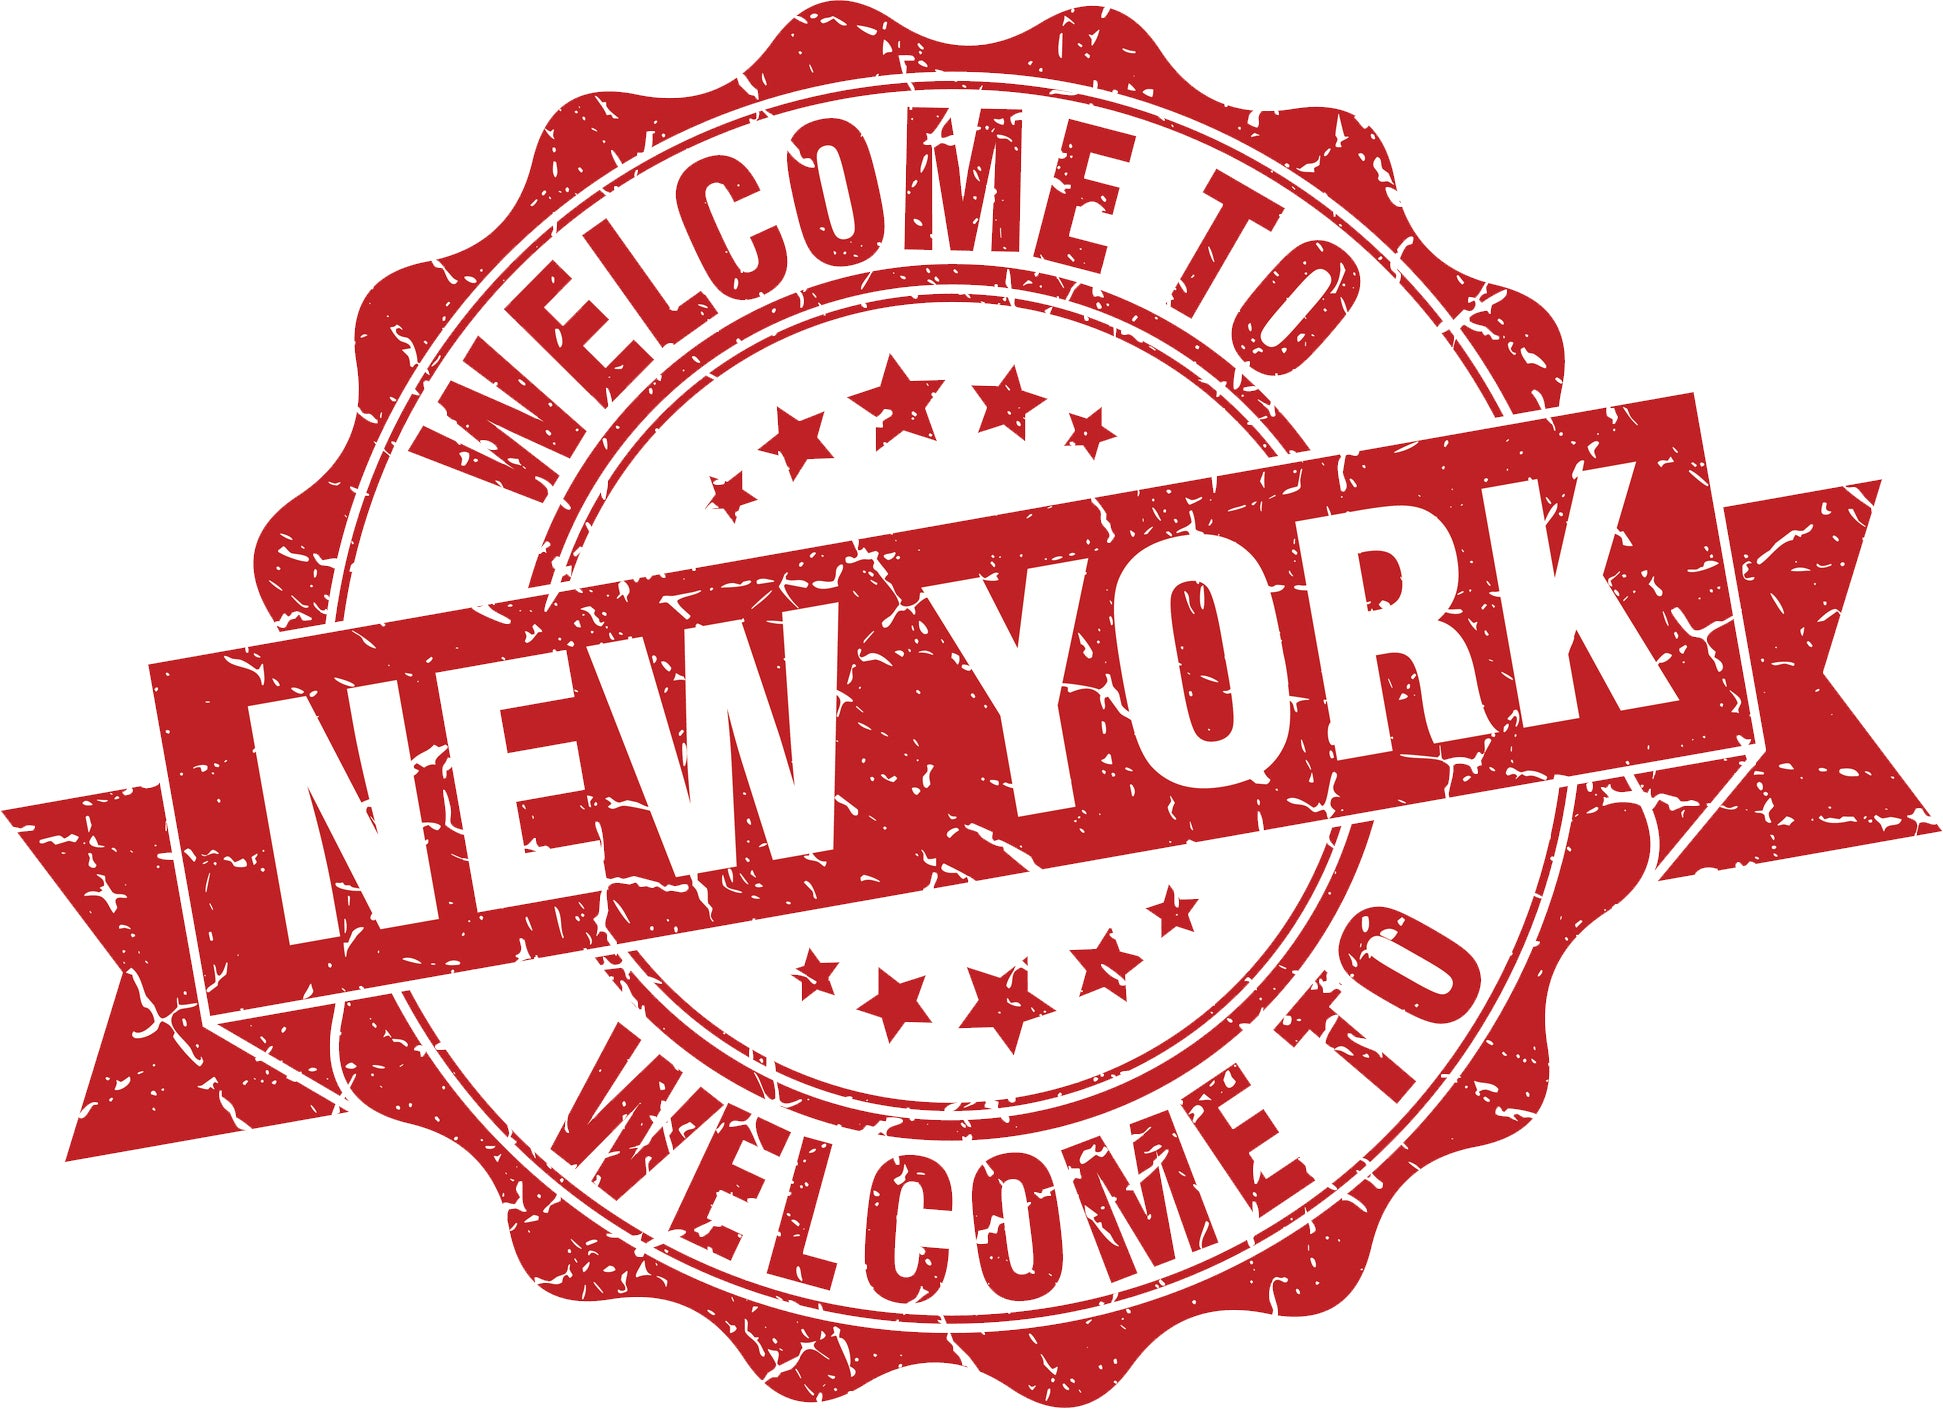 Cool Vintage Stamp Sign Cartoon Icon - Welcome to New York Vinyl Decal Sticker